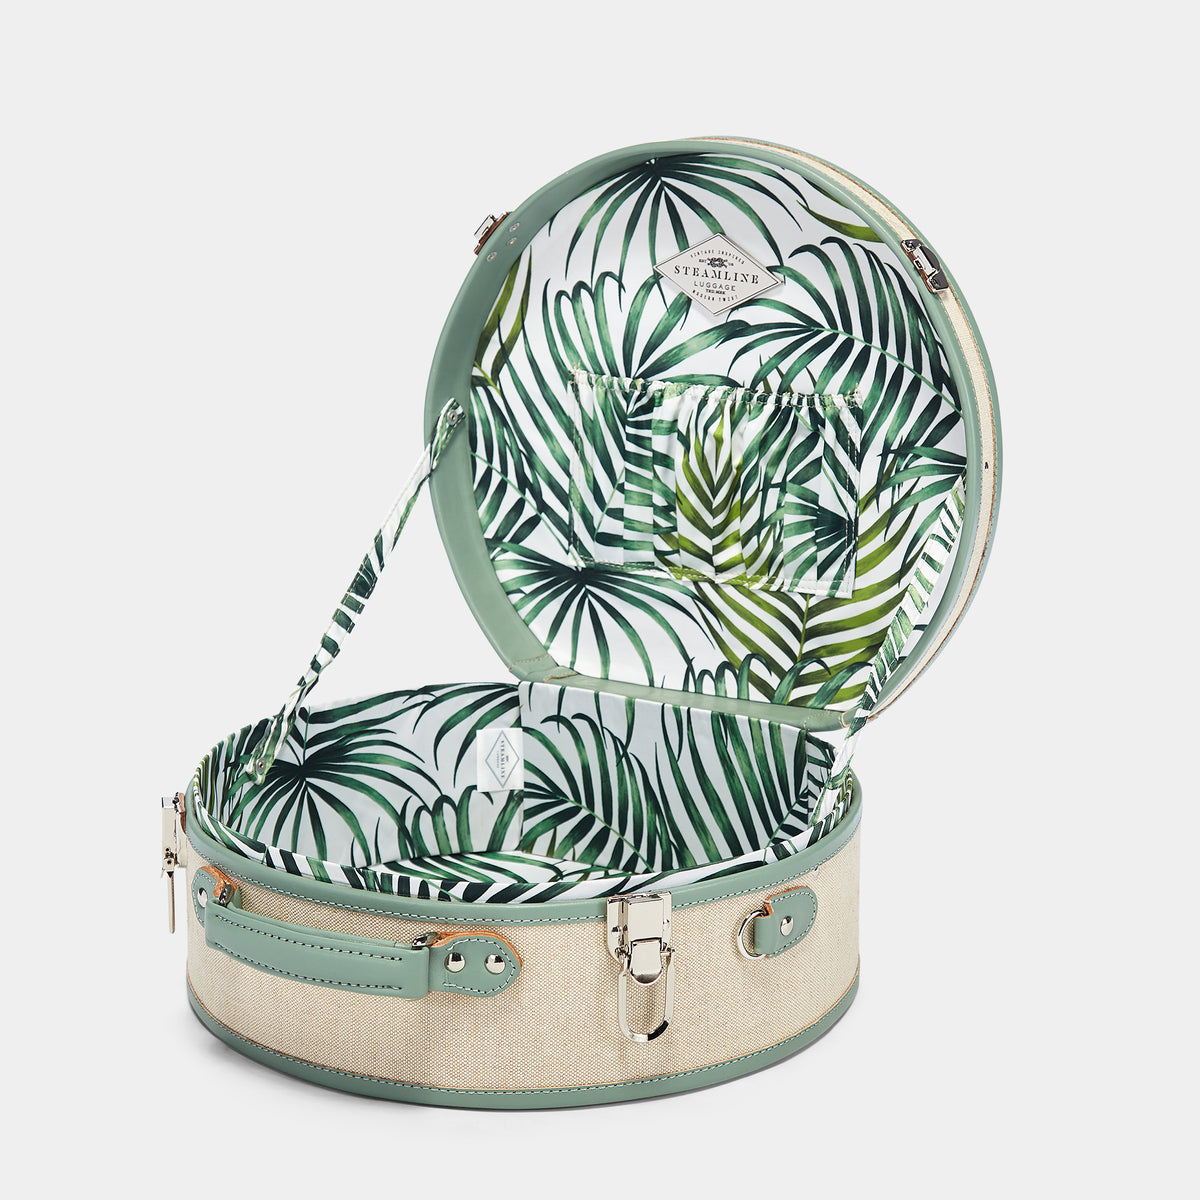 The Editor Hatbox Large in Seagreen - Hat Box Luggage - Interior Front